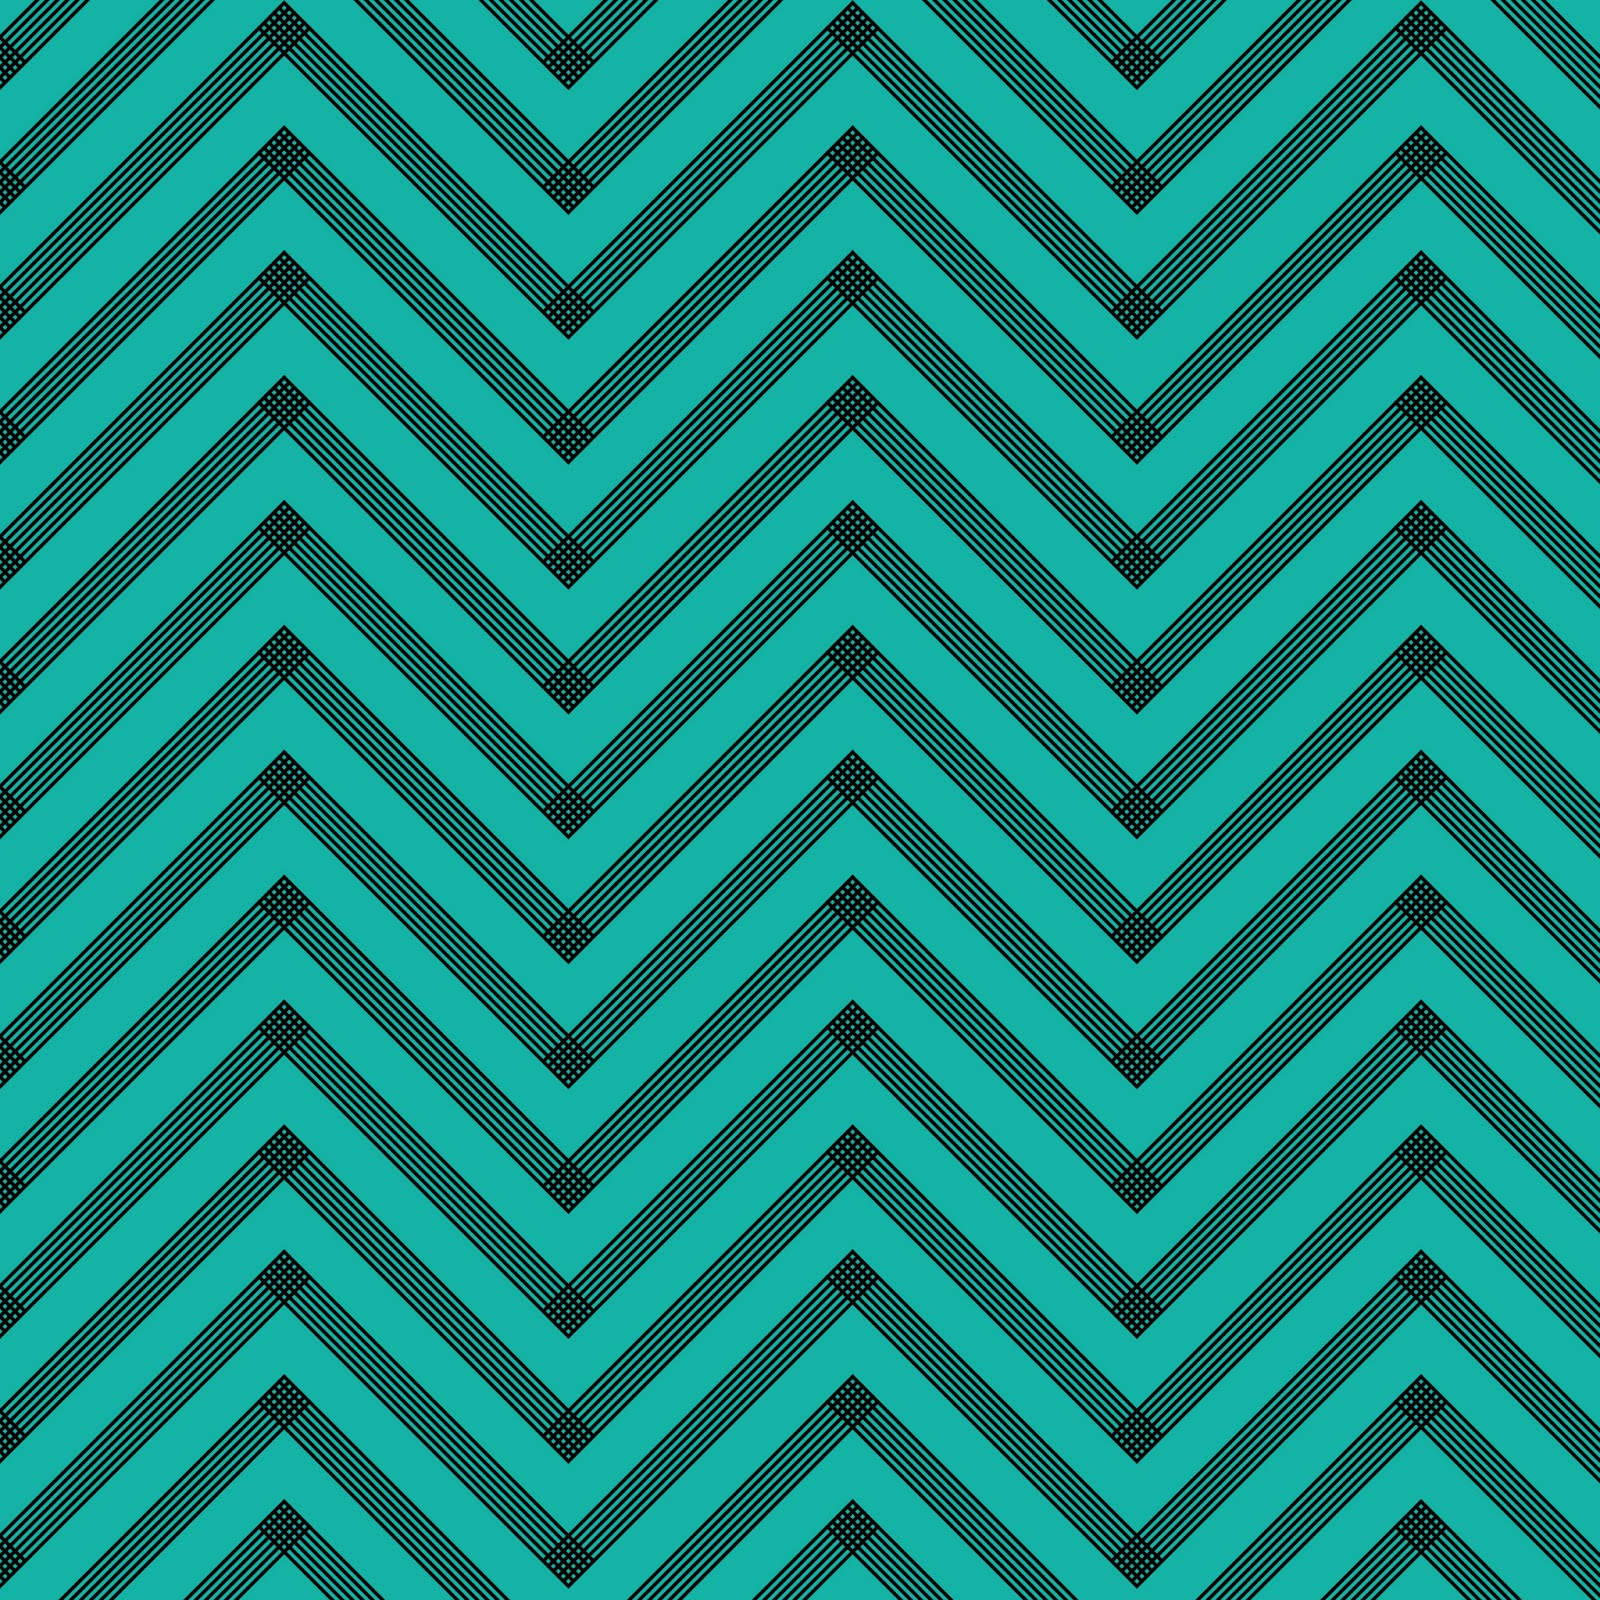 Doodlecraft free sketchy chevron background freebies for Teal chevron wallpaper